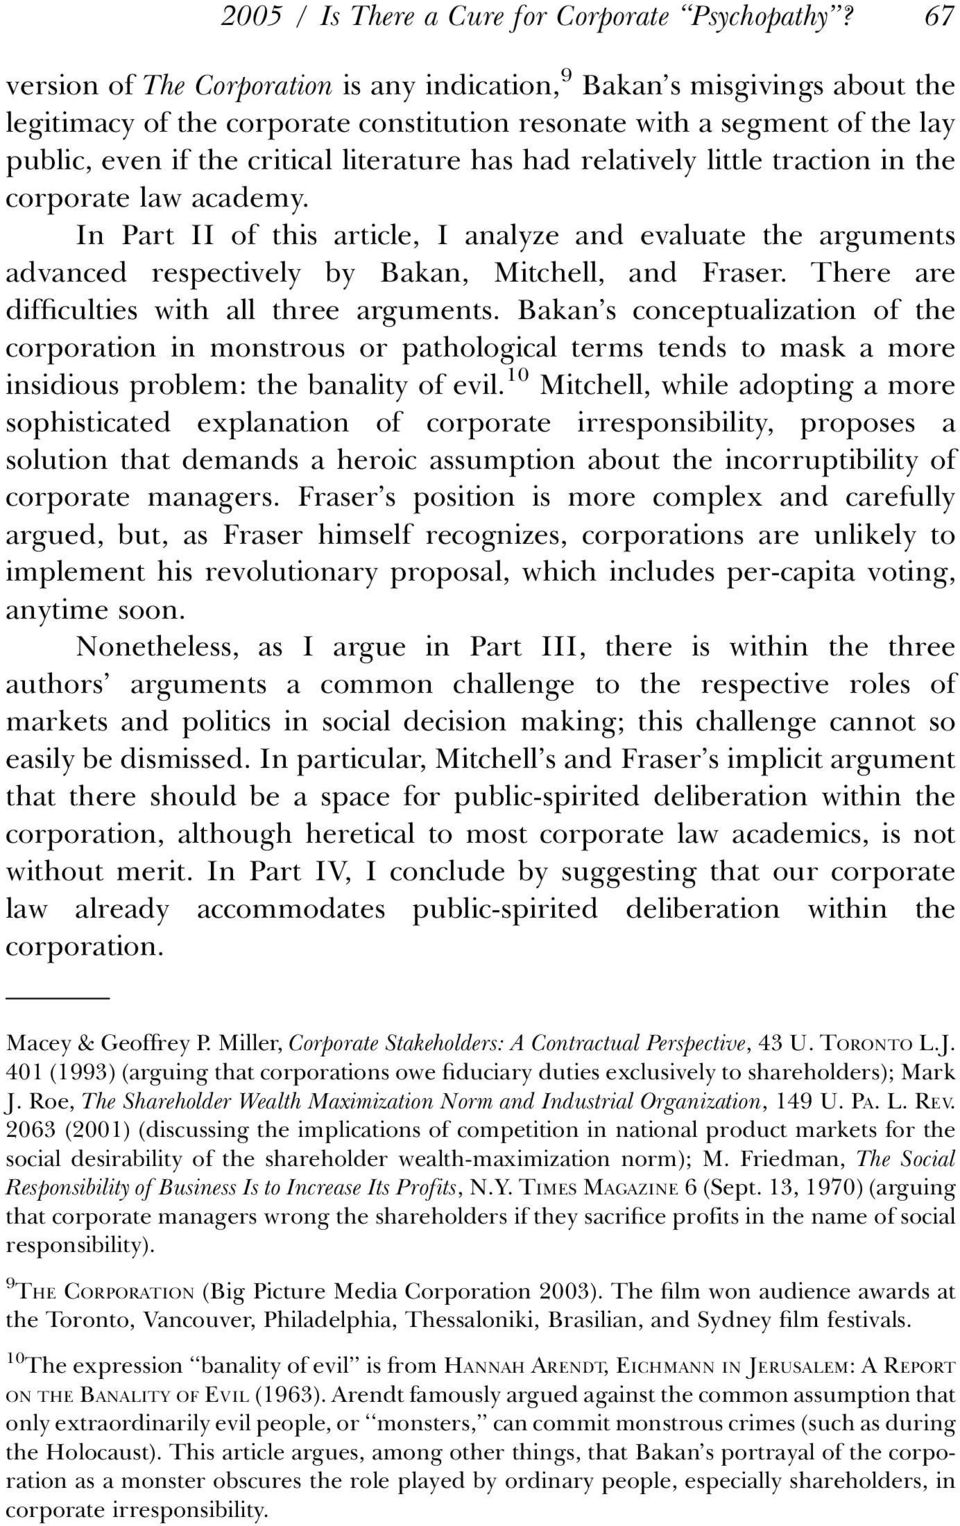 had relatively little traction in the corporate law academy. In Part II of this article, I analyze and evaluate the arguments advanced respectively by Bakan, Mitchell, and Fraser.